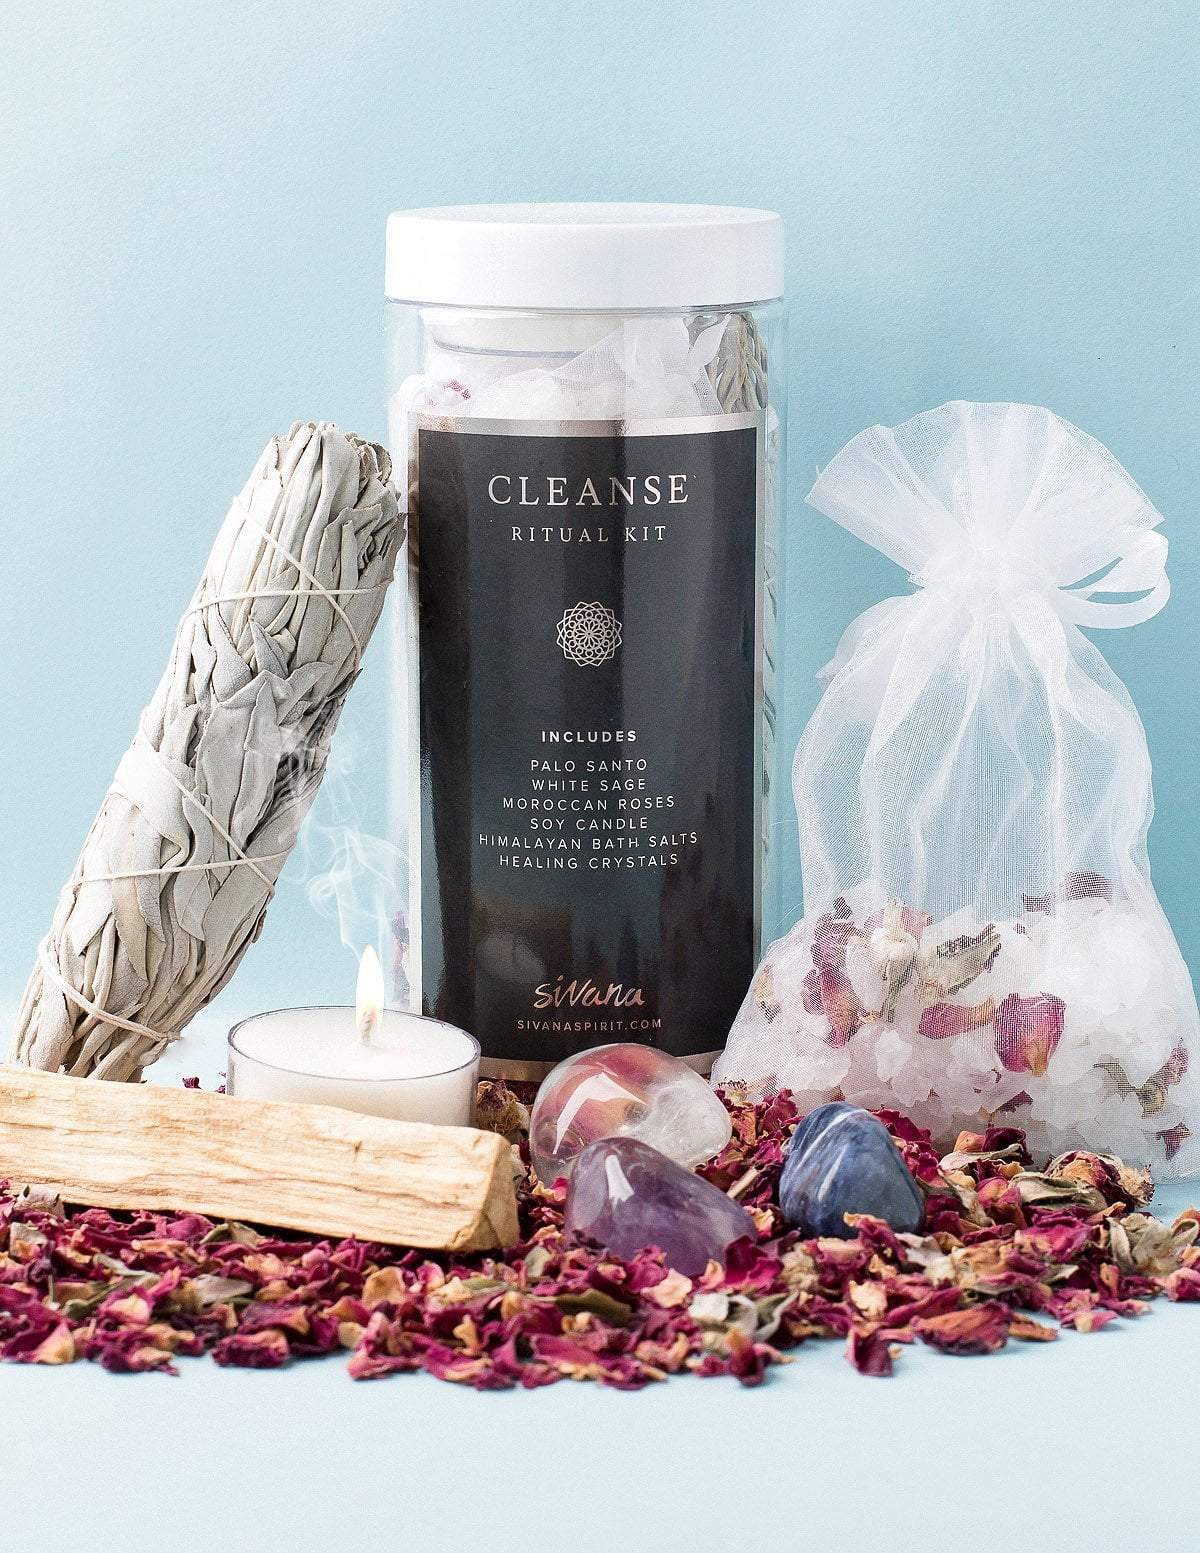 Cleanse Ritual Kit, $40 @sivanaspirit.com